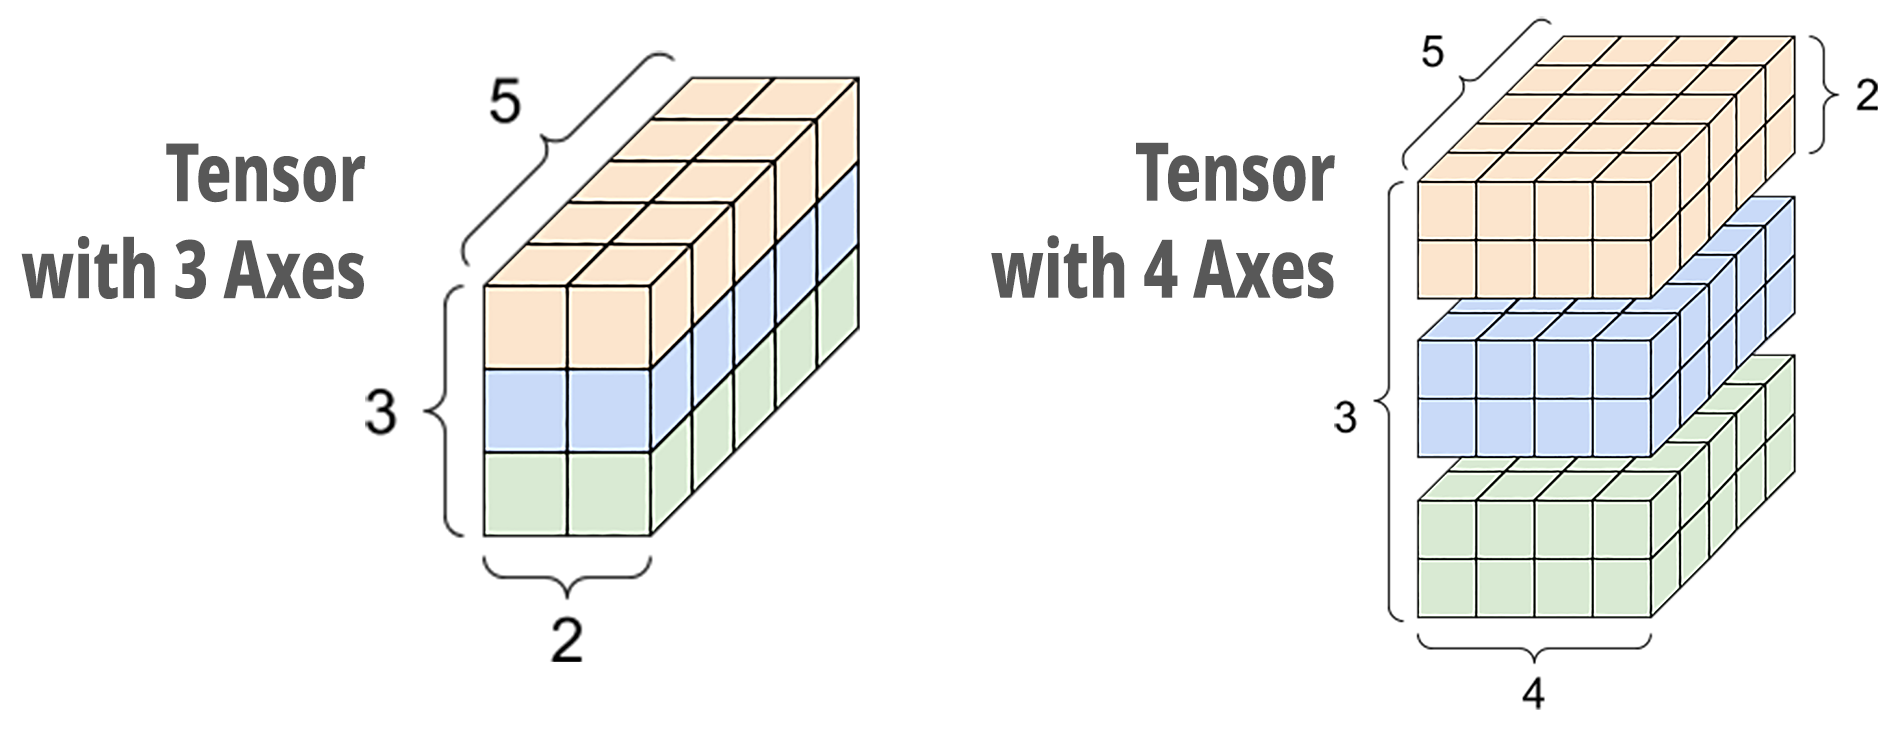 Tensor with 3 and 4 Axes